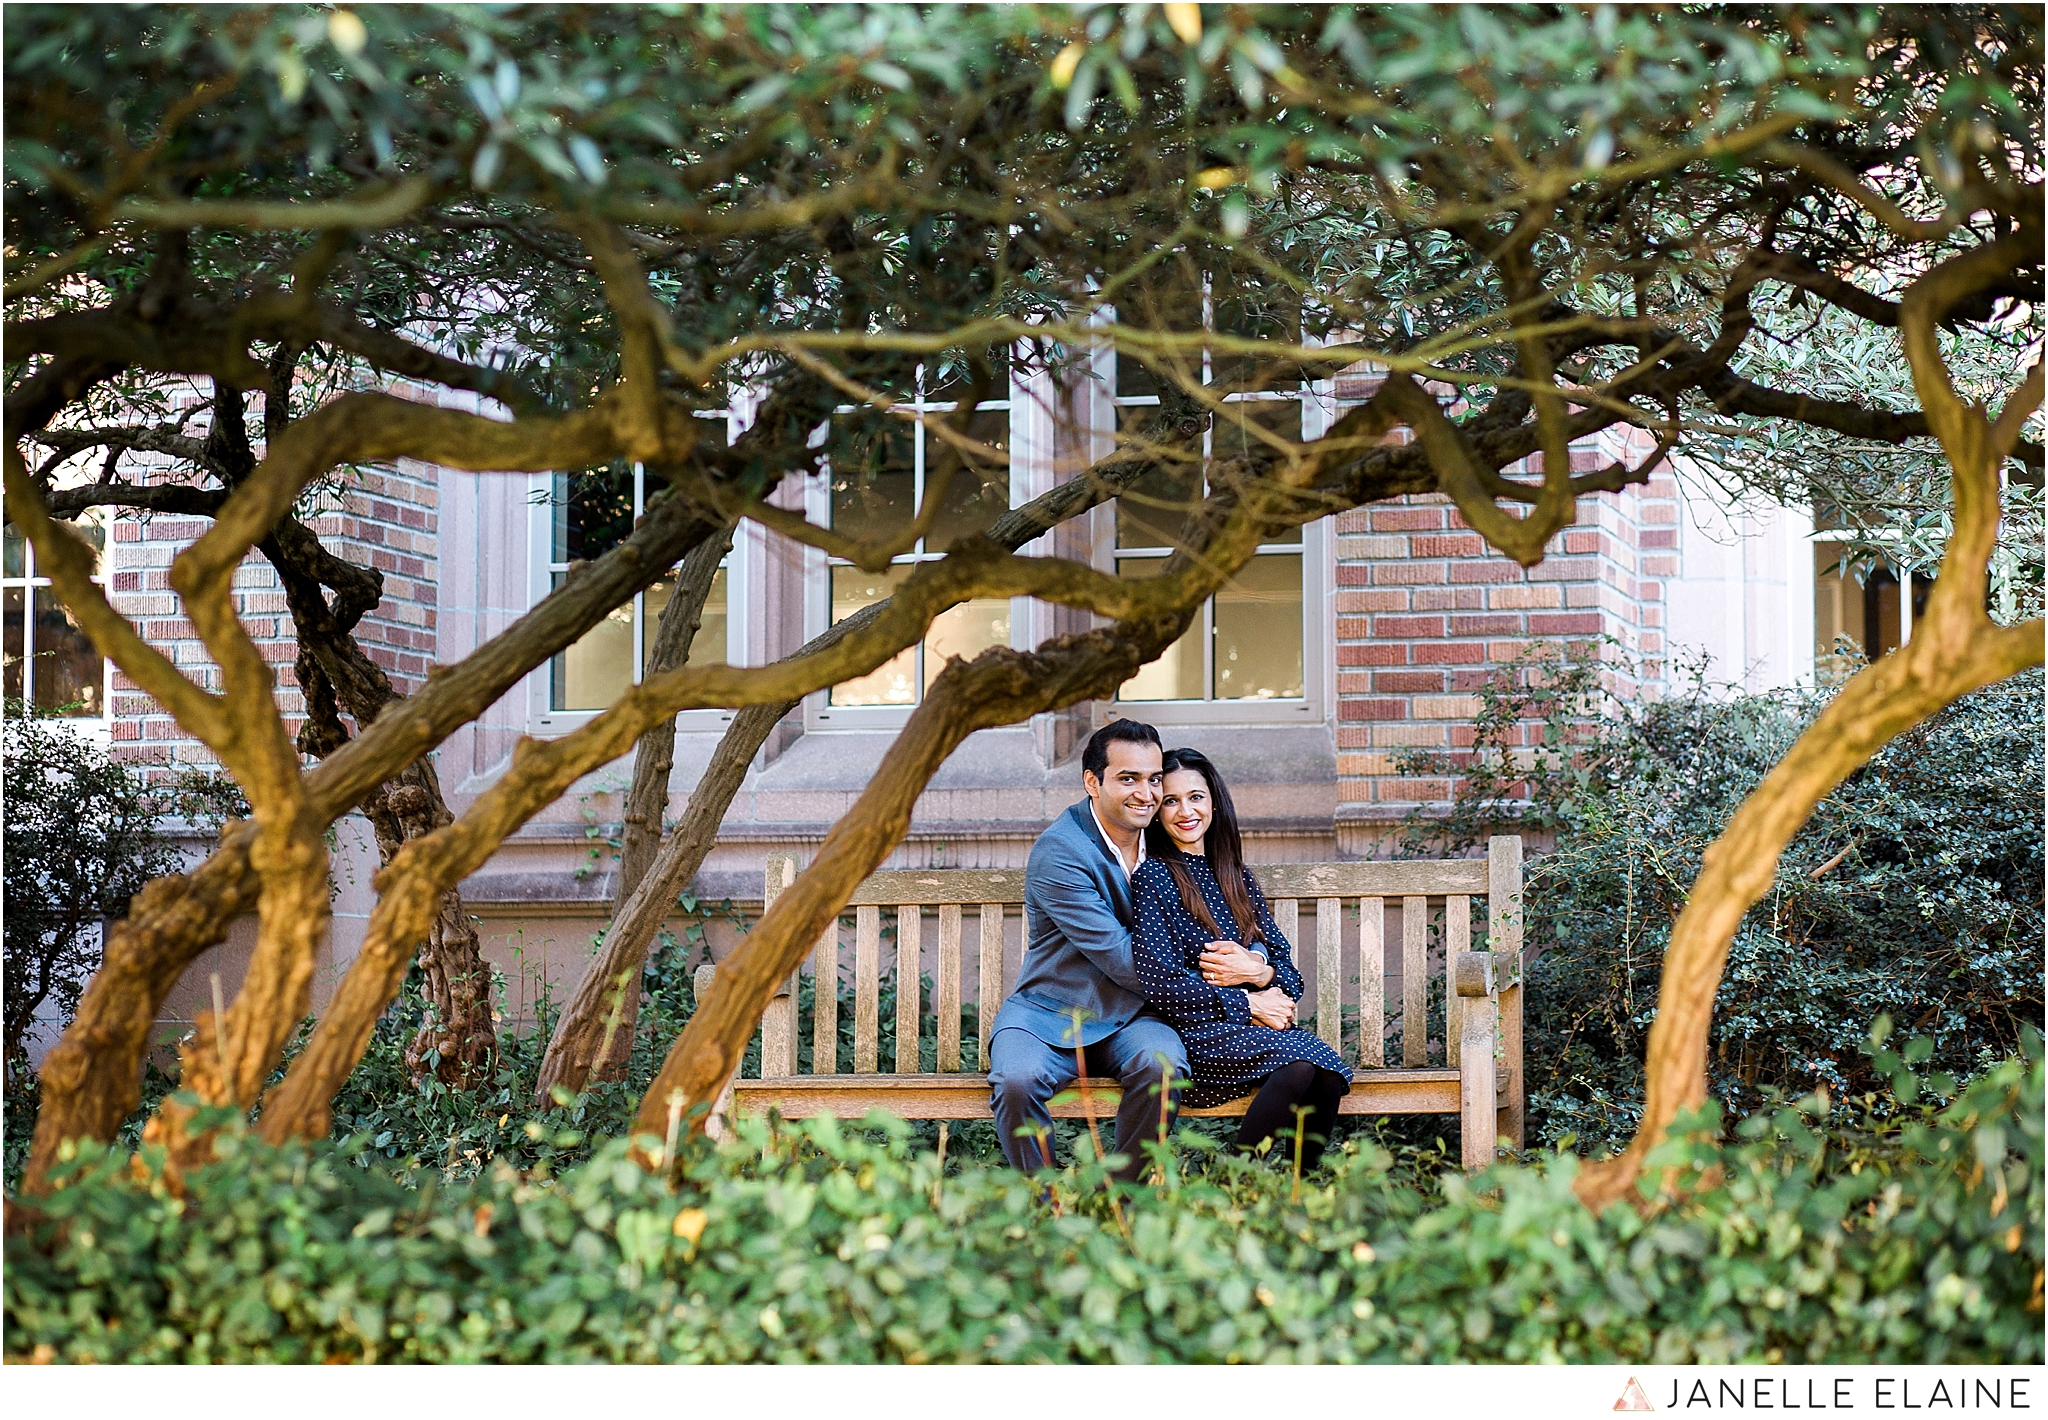 janelle elaine photography-zain and umema-seattle-uw-red square-engagement-photographer-119.jpg